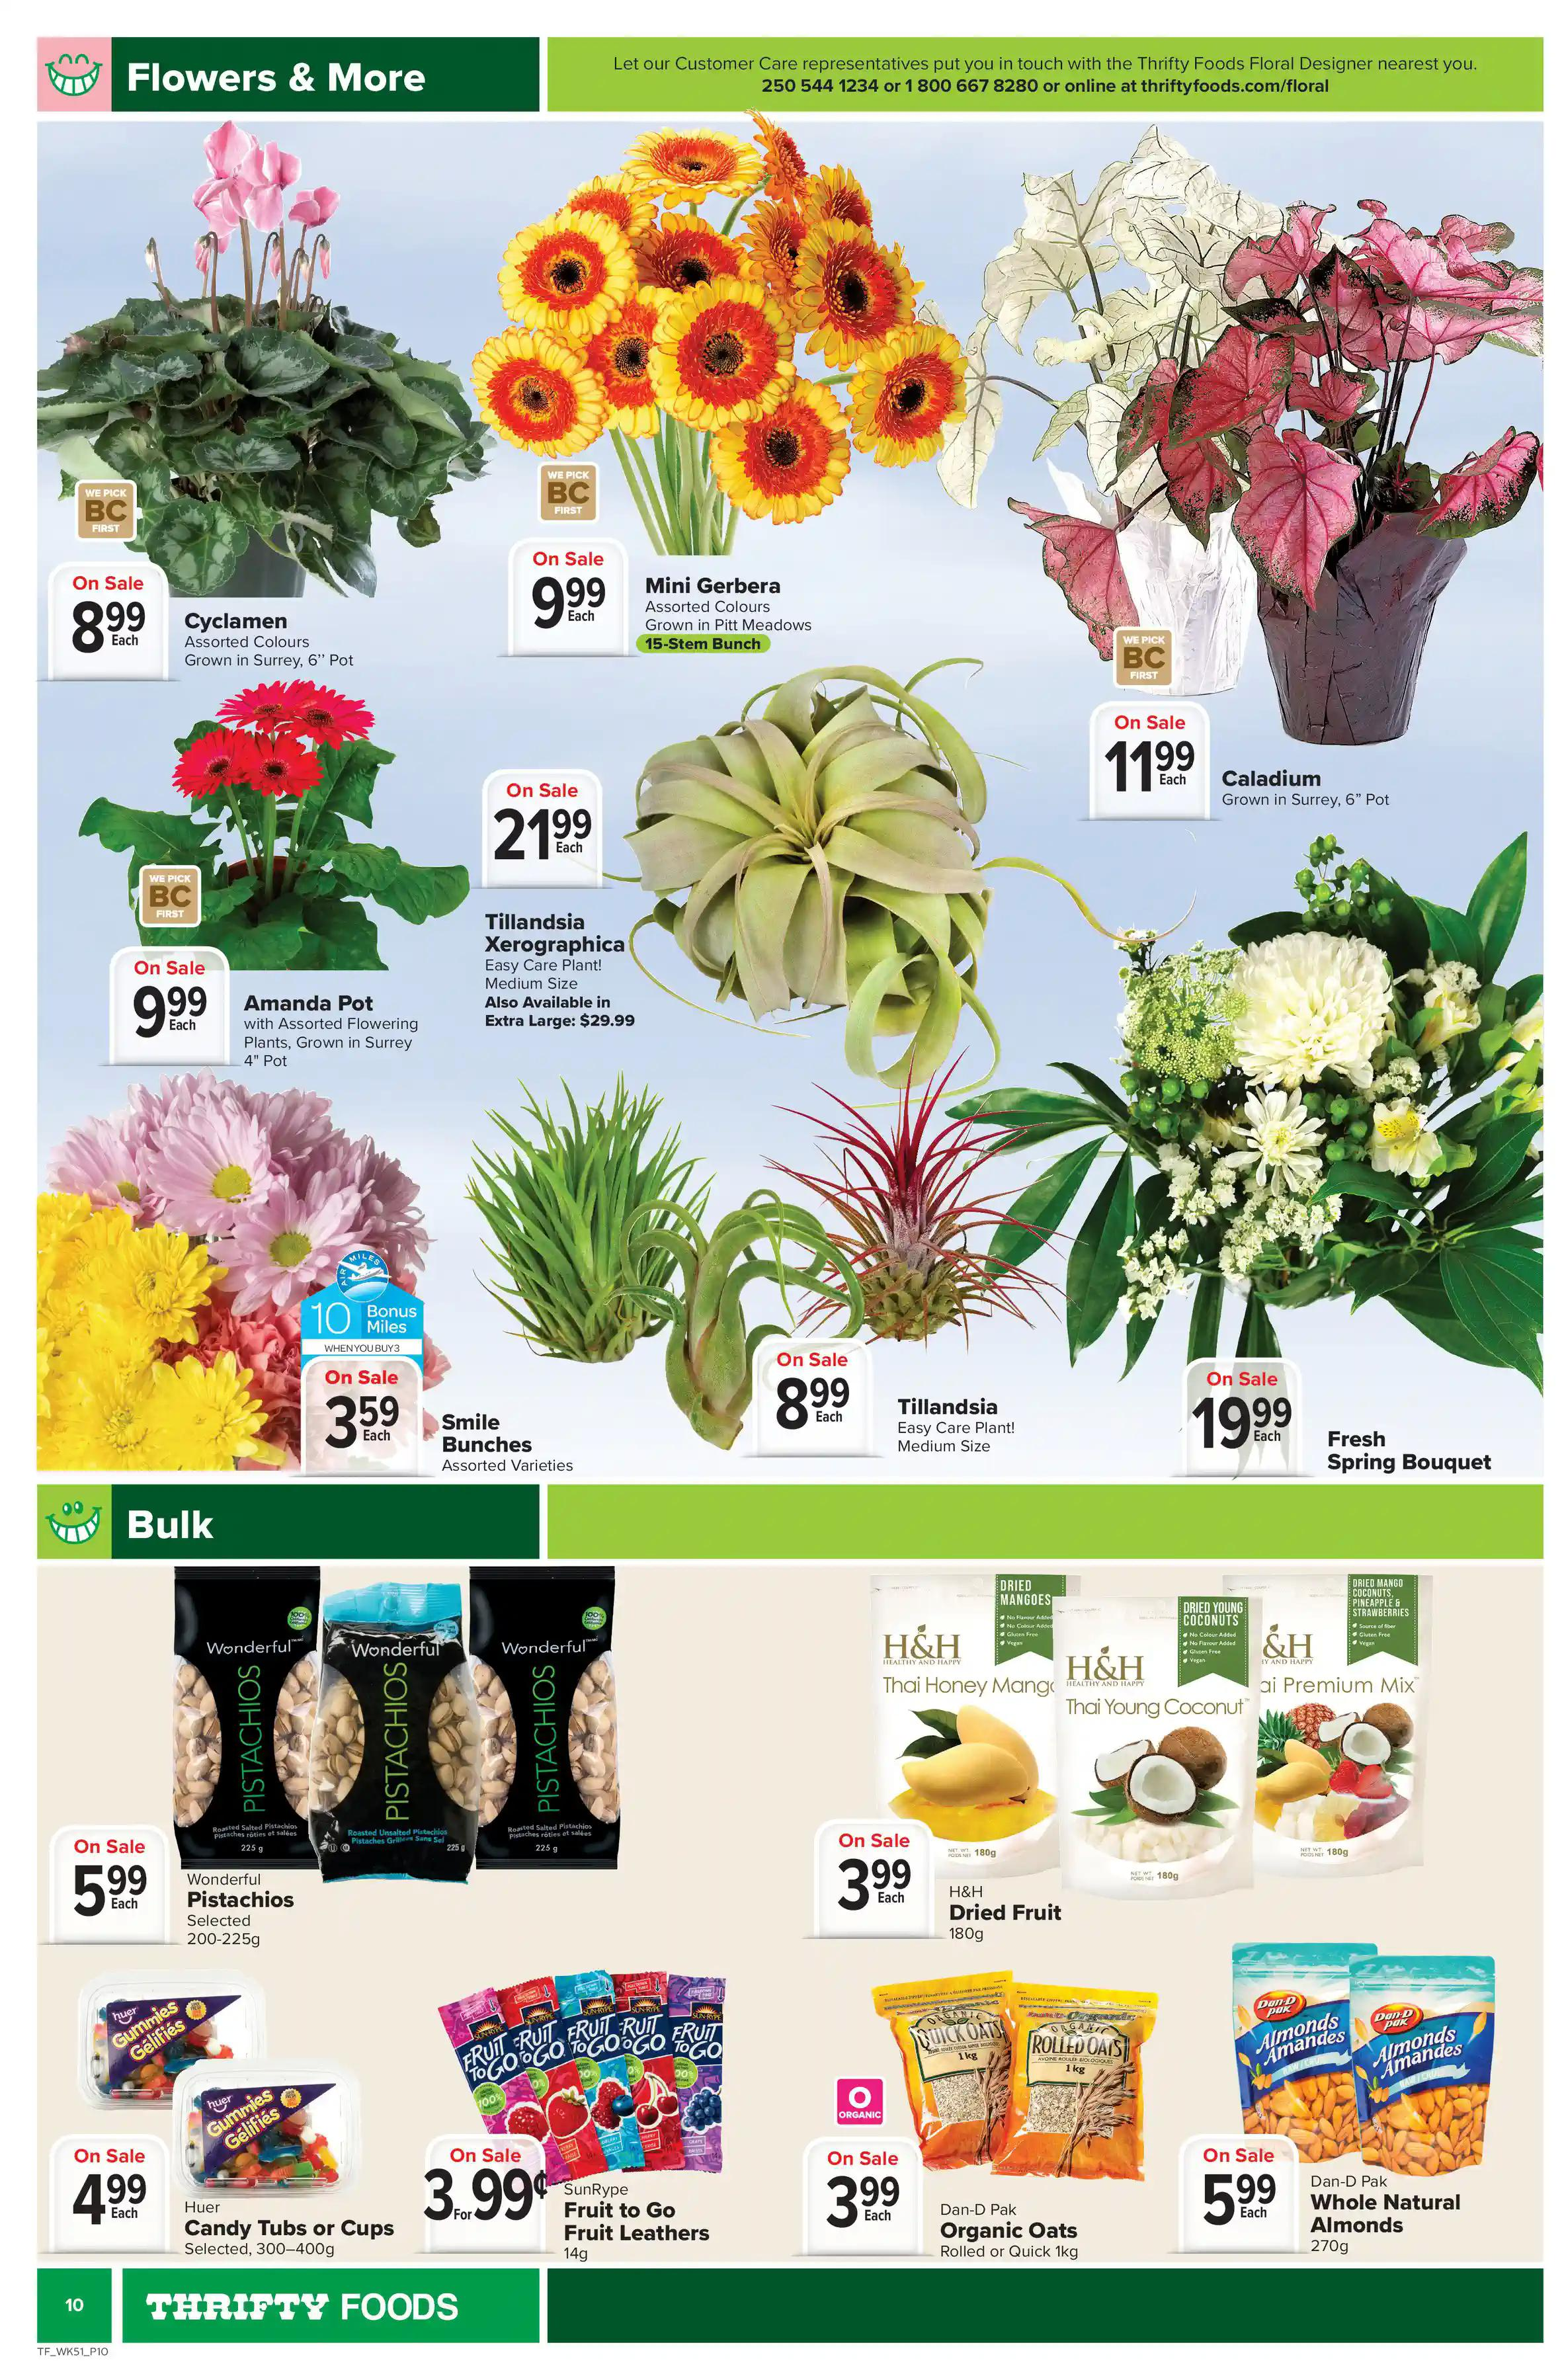 Thrifty Foods - Weekly Flyer Specials - Page 14